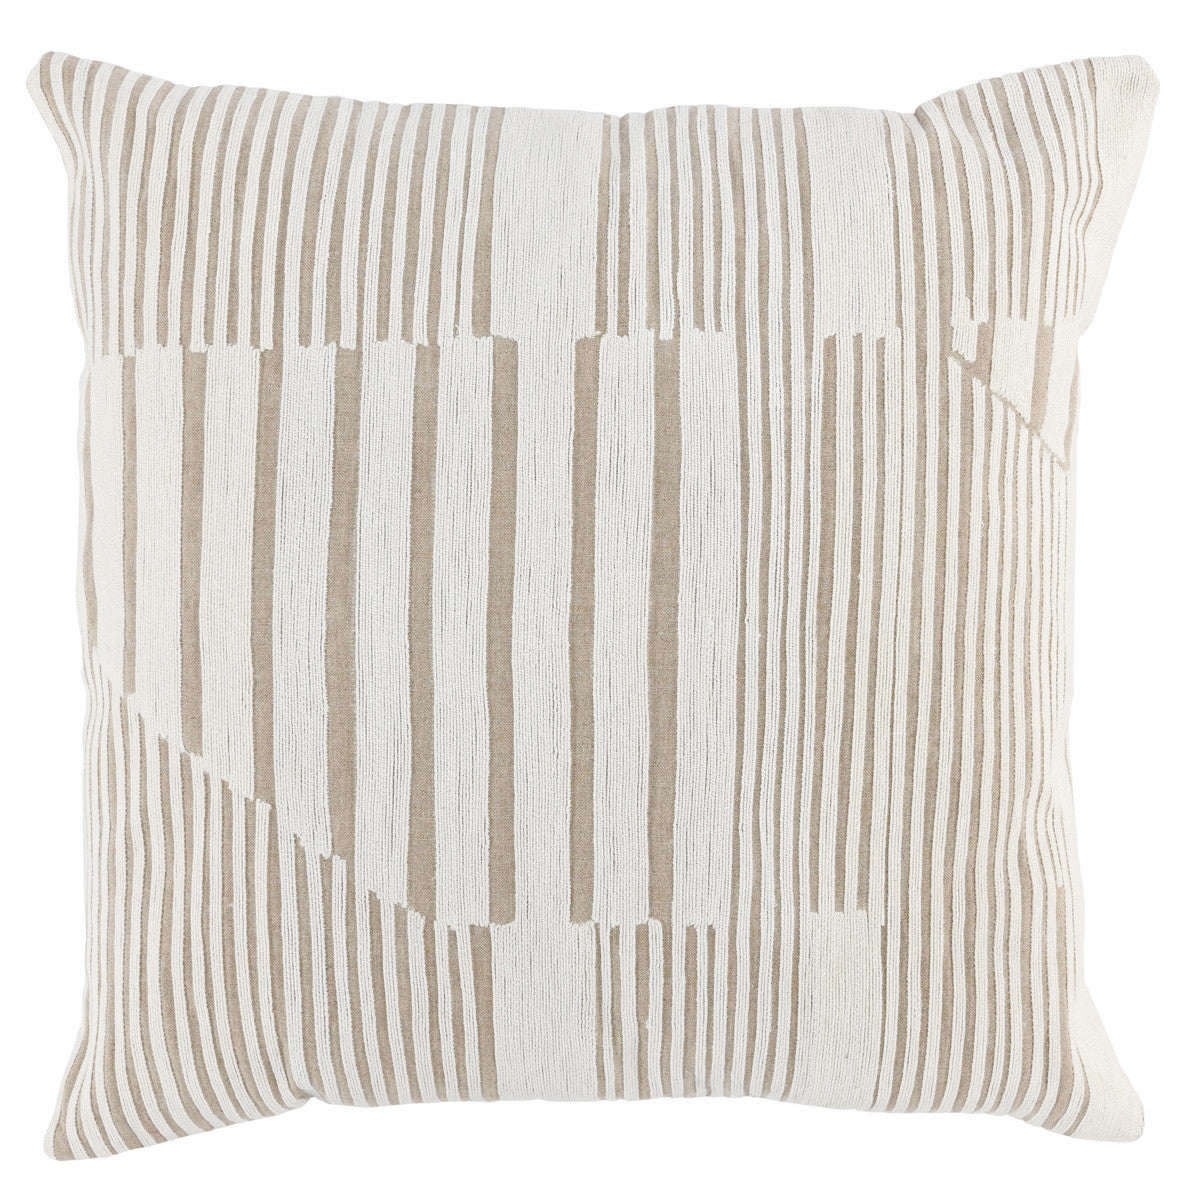 Tara Pillow (Set of 2)